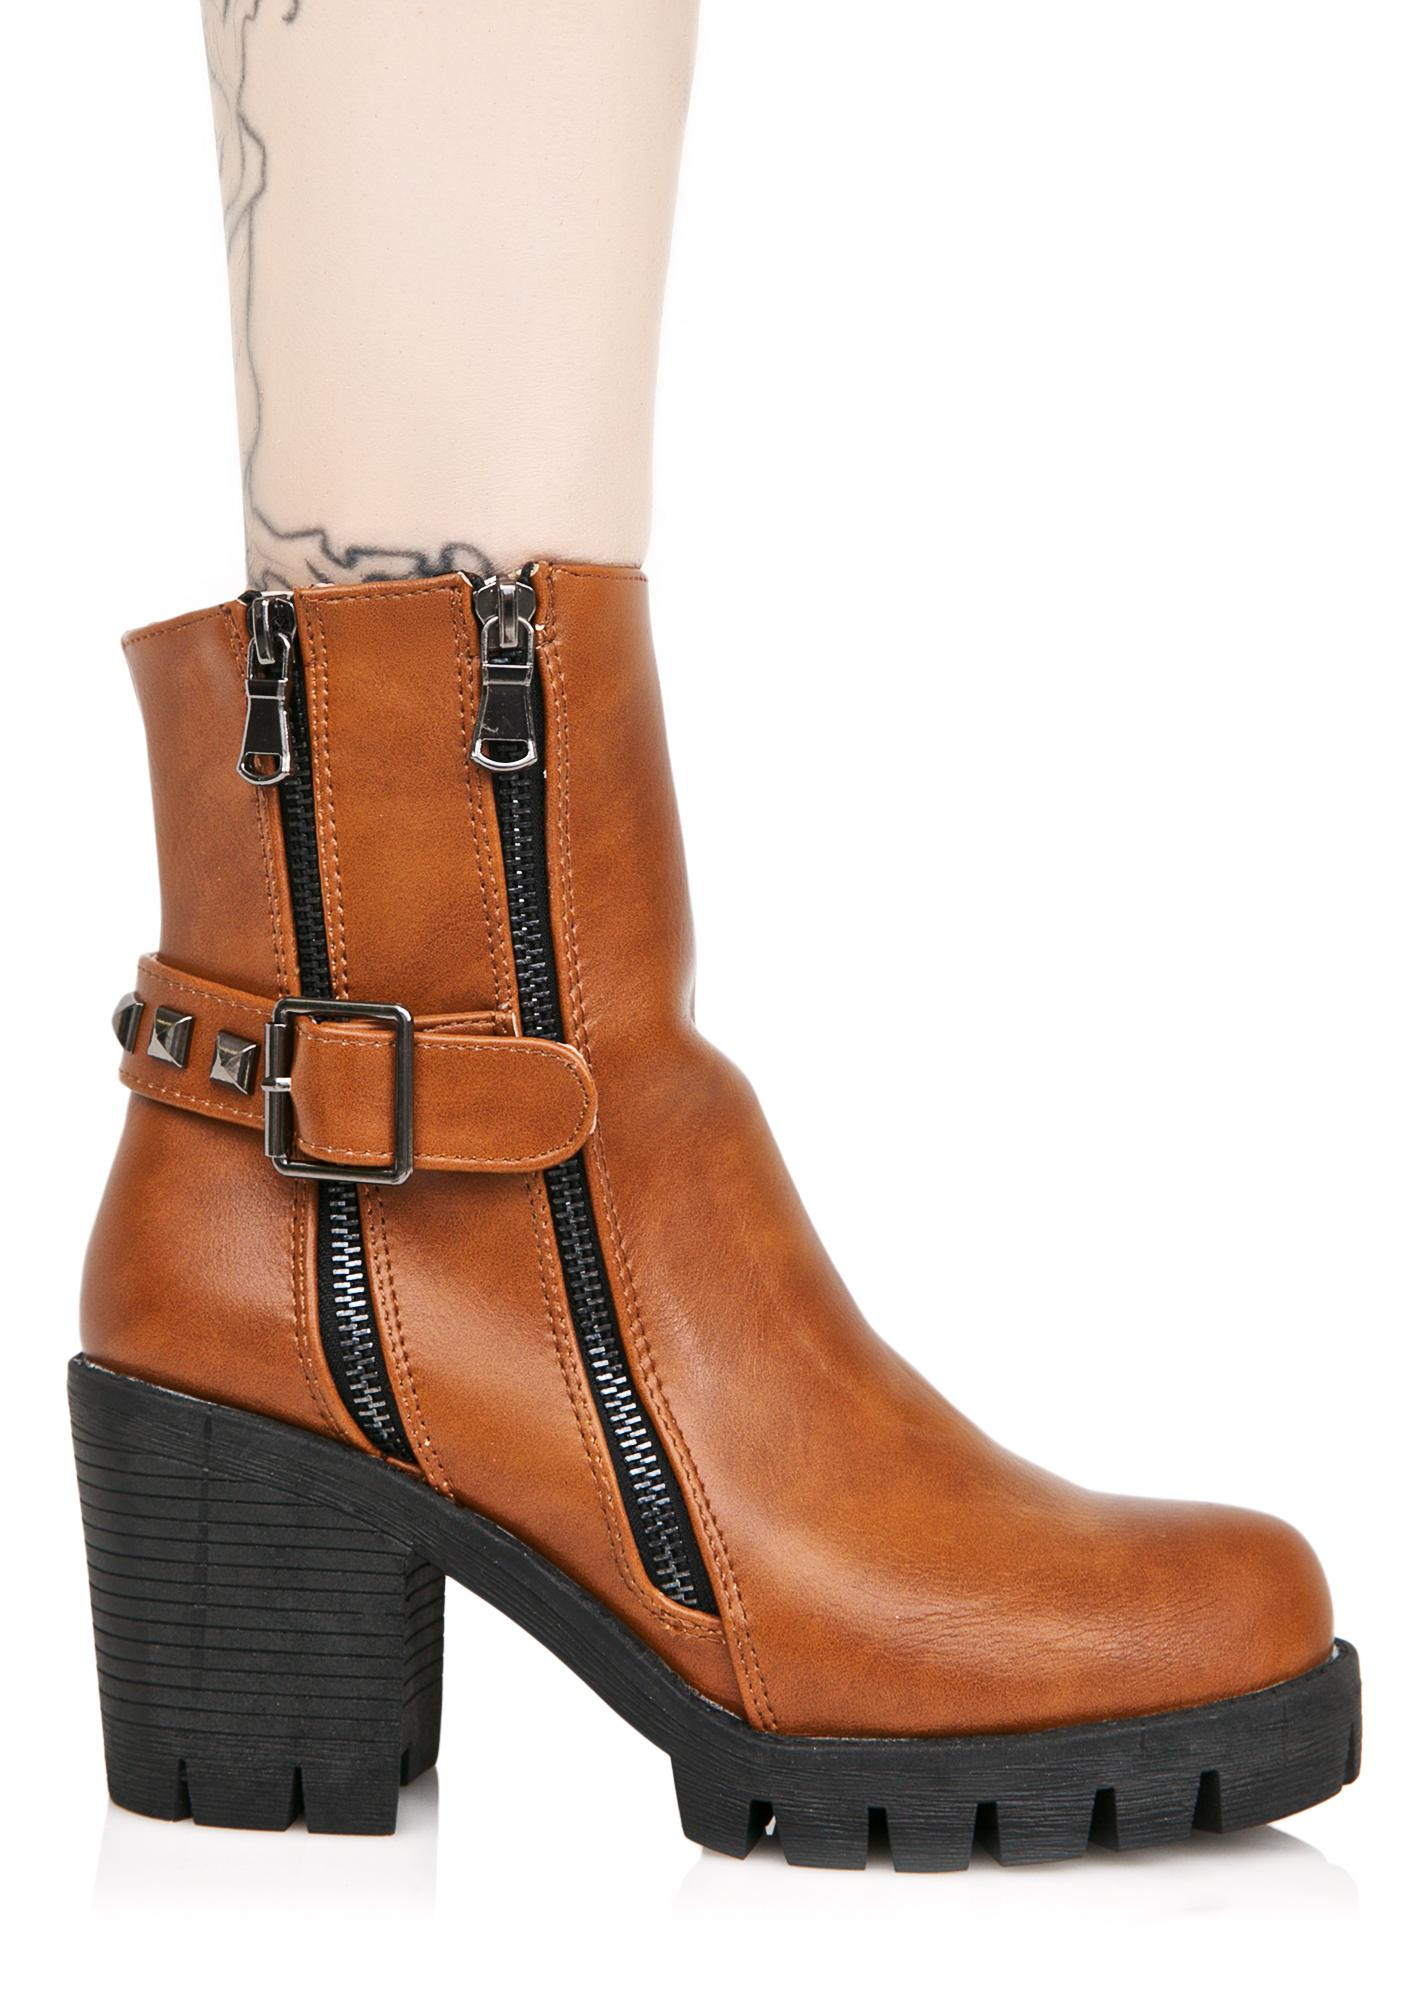 Abernathy Ankle Boots